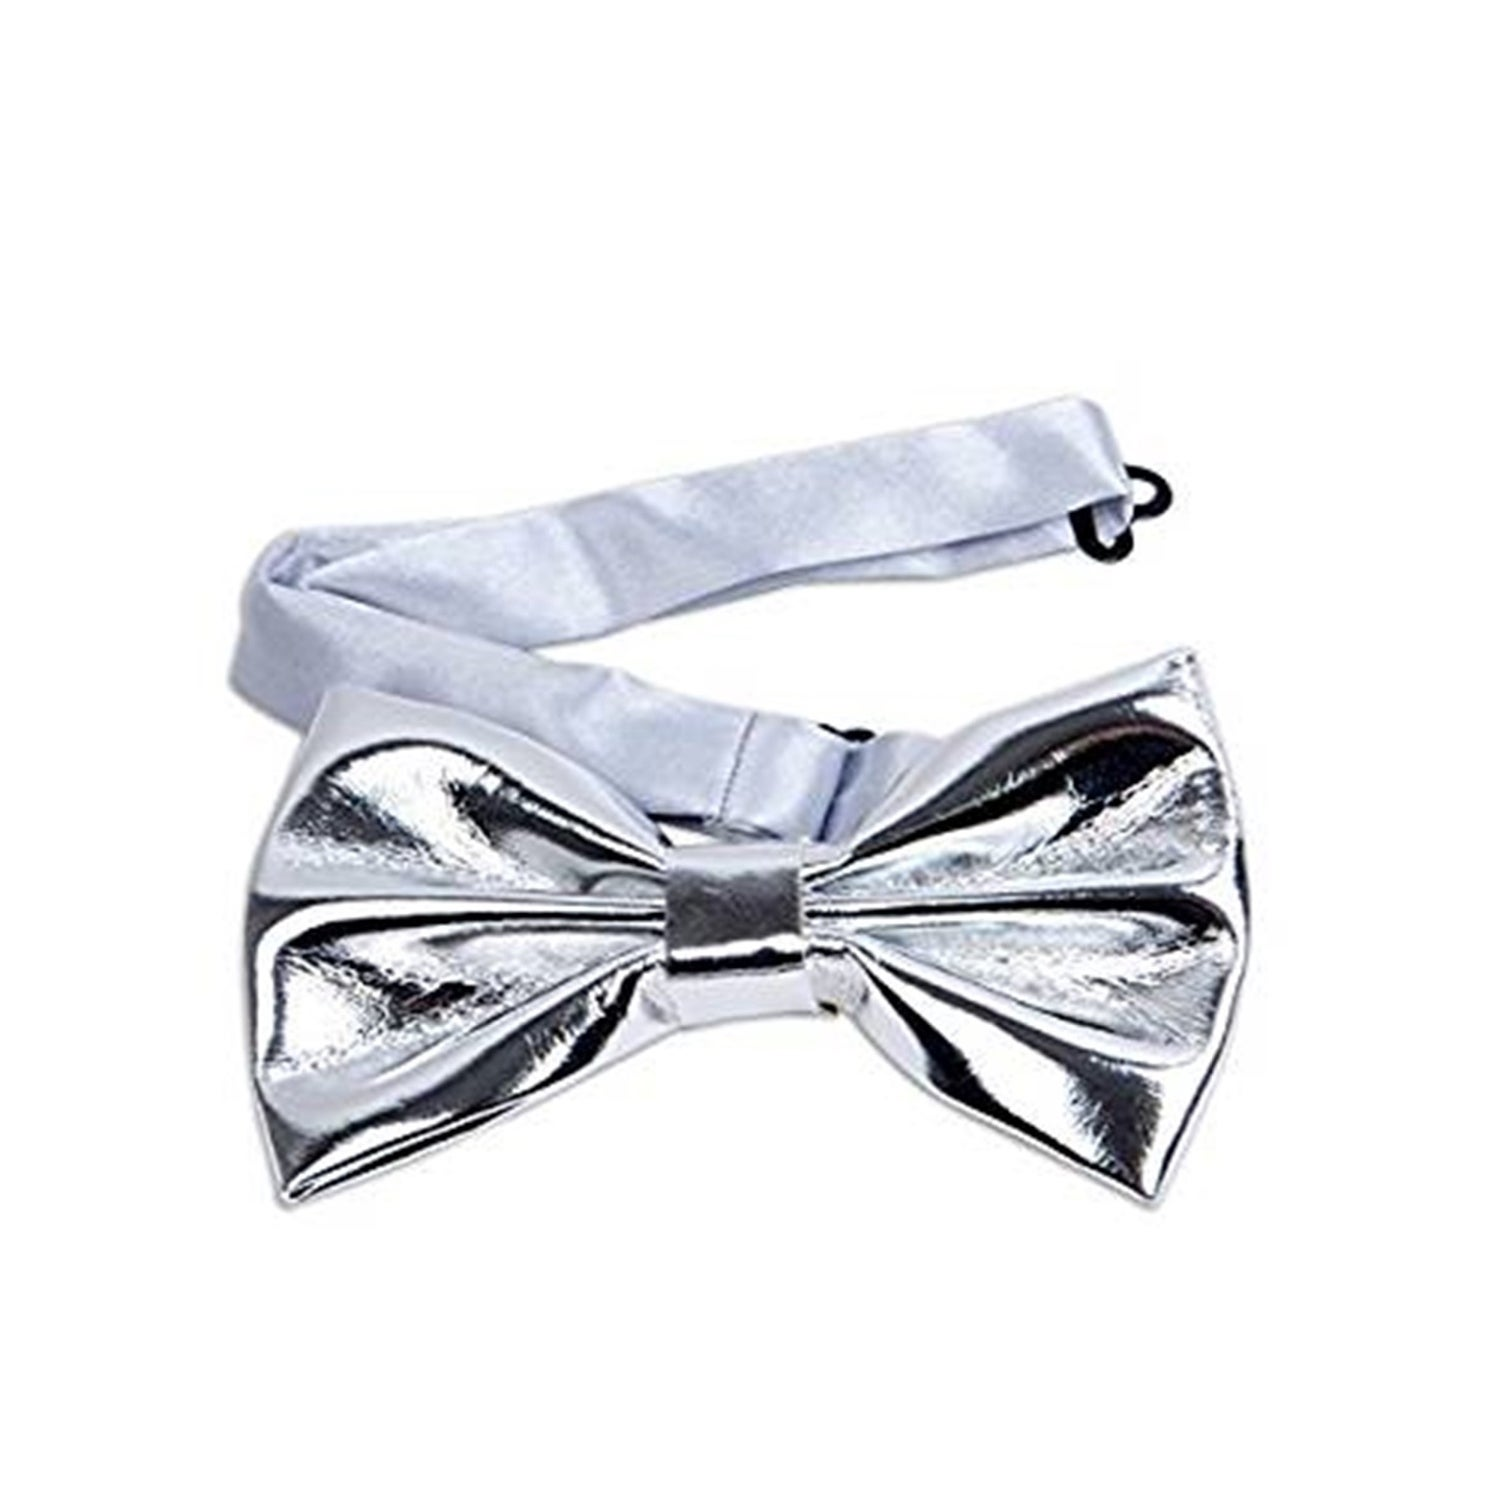 MEN/'S BOW TIE GEOMETRIC GOLD BLUE TIE PIPING HANKY PRE-TIED BOW ADJUSTABLE CLIP